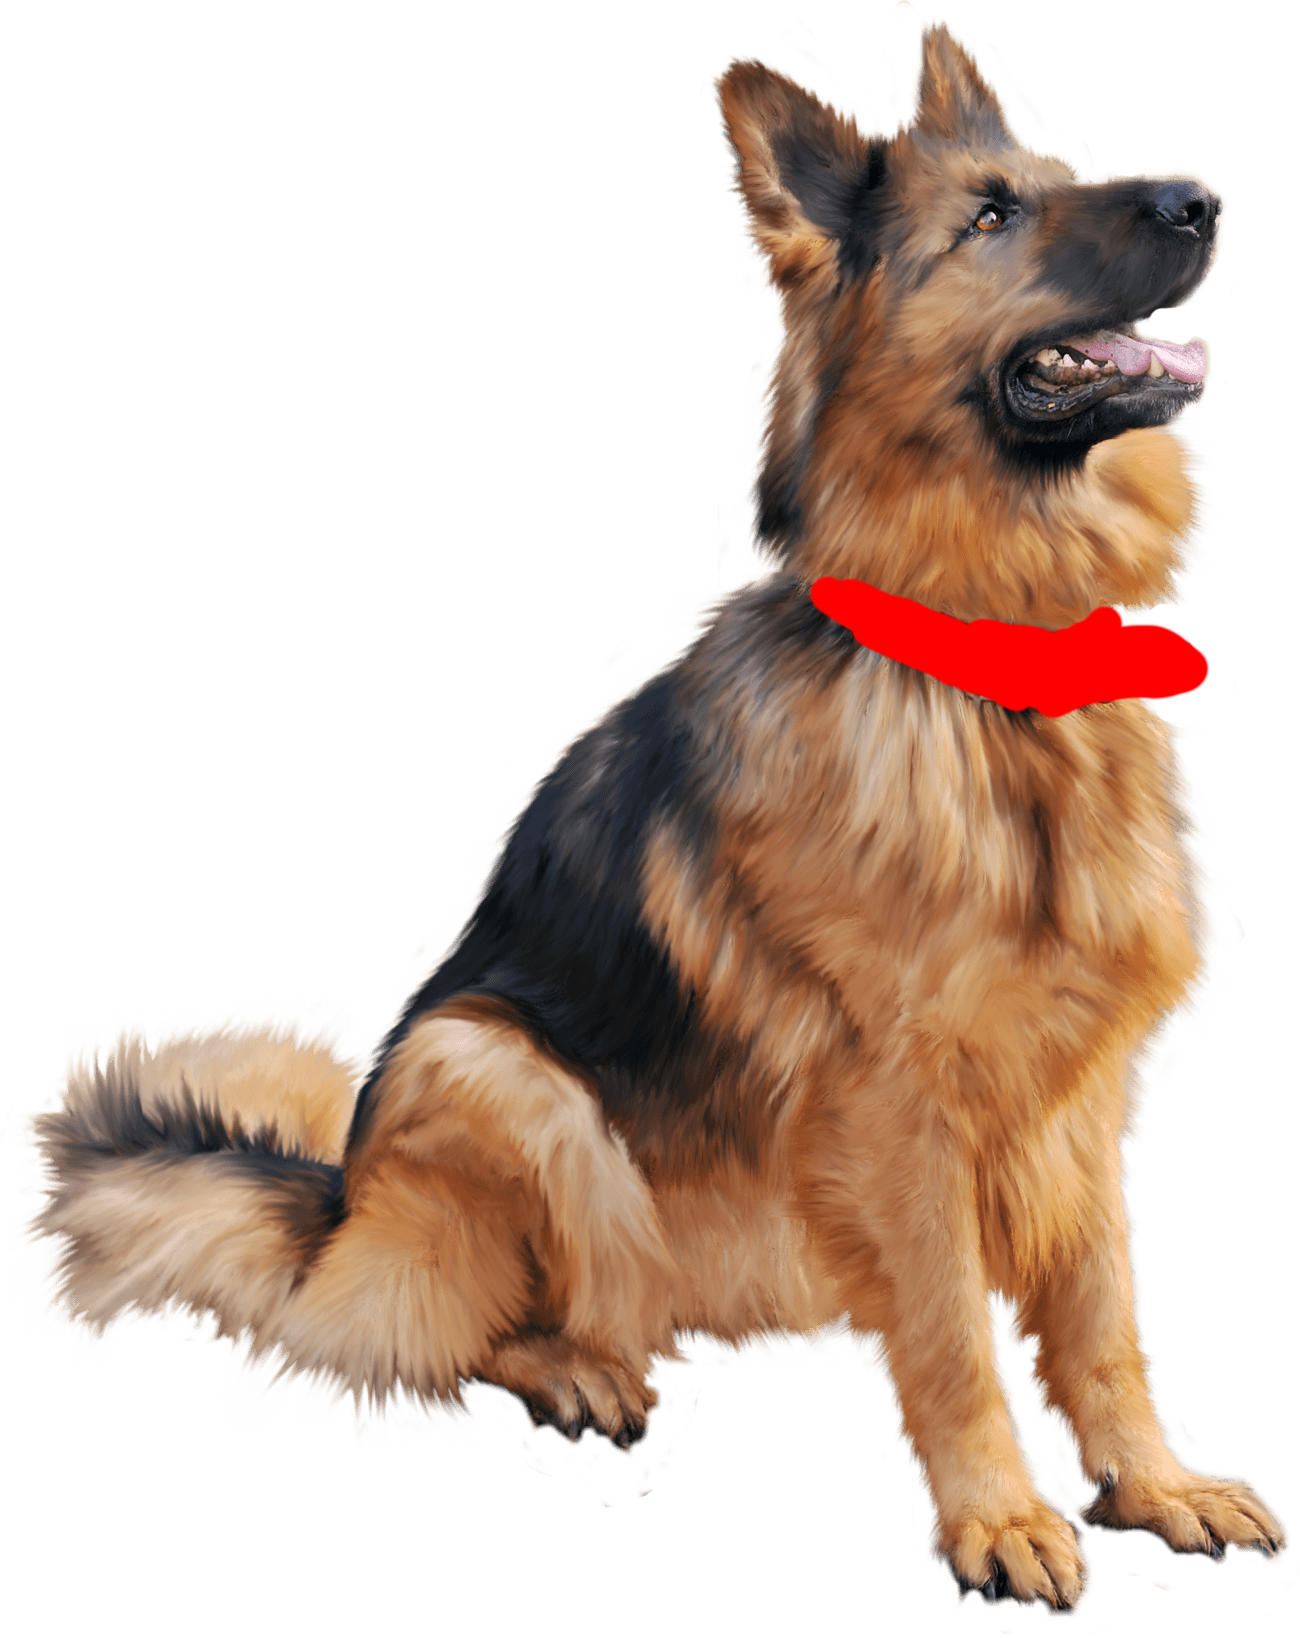 Dog Picture With Transparent Background